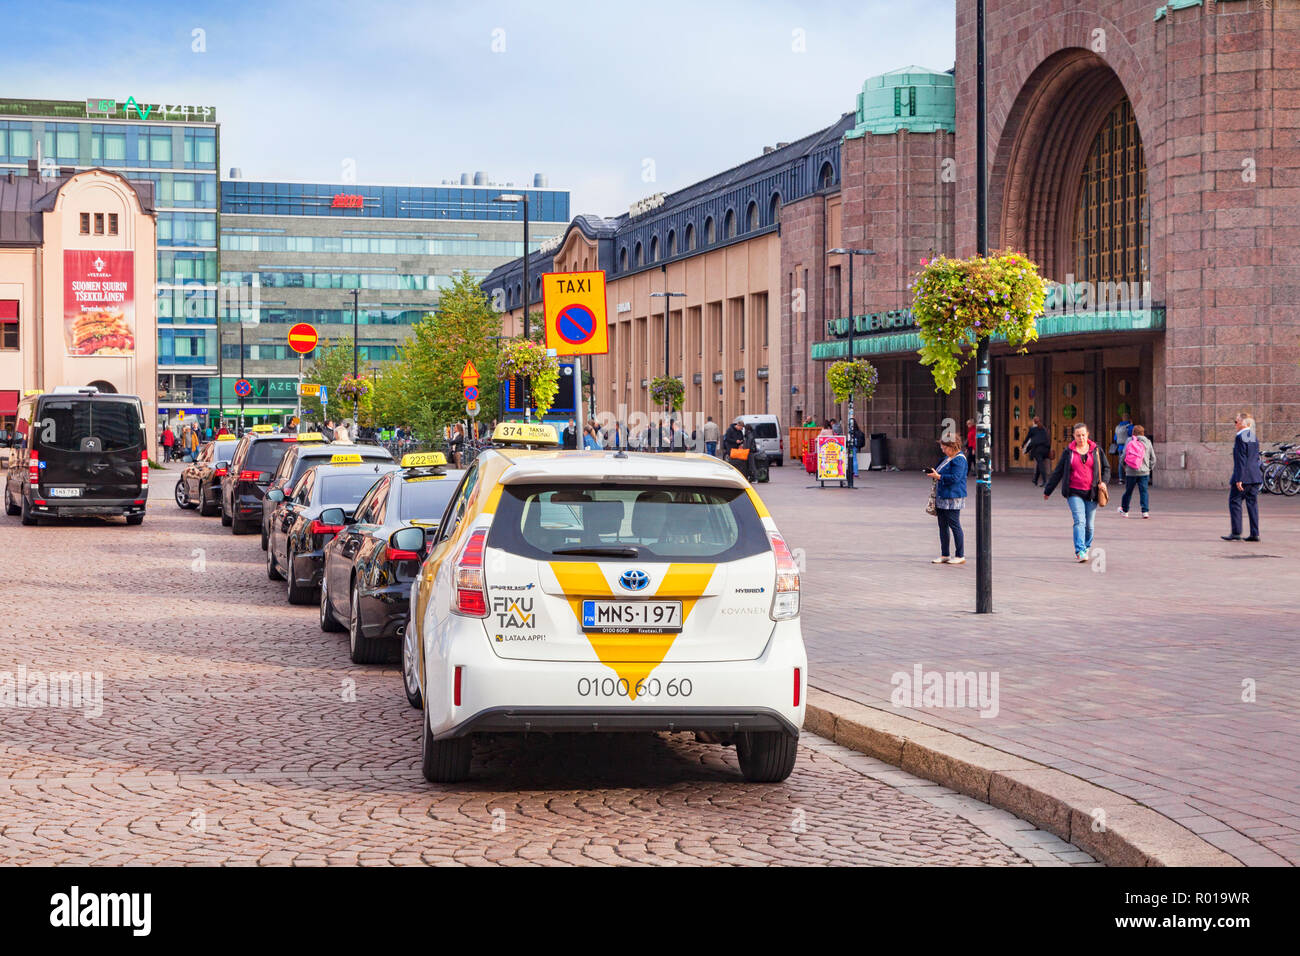 20 September 2018: Helsinki, Finland - Taxi cabs lined up at the railway station. - Stock Image